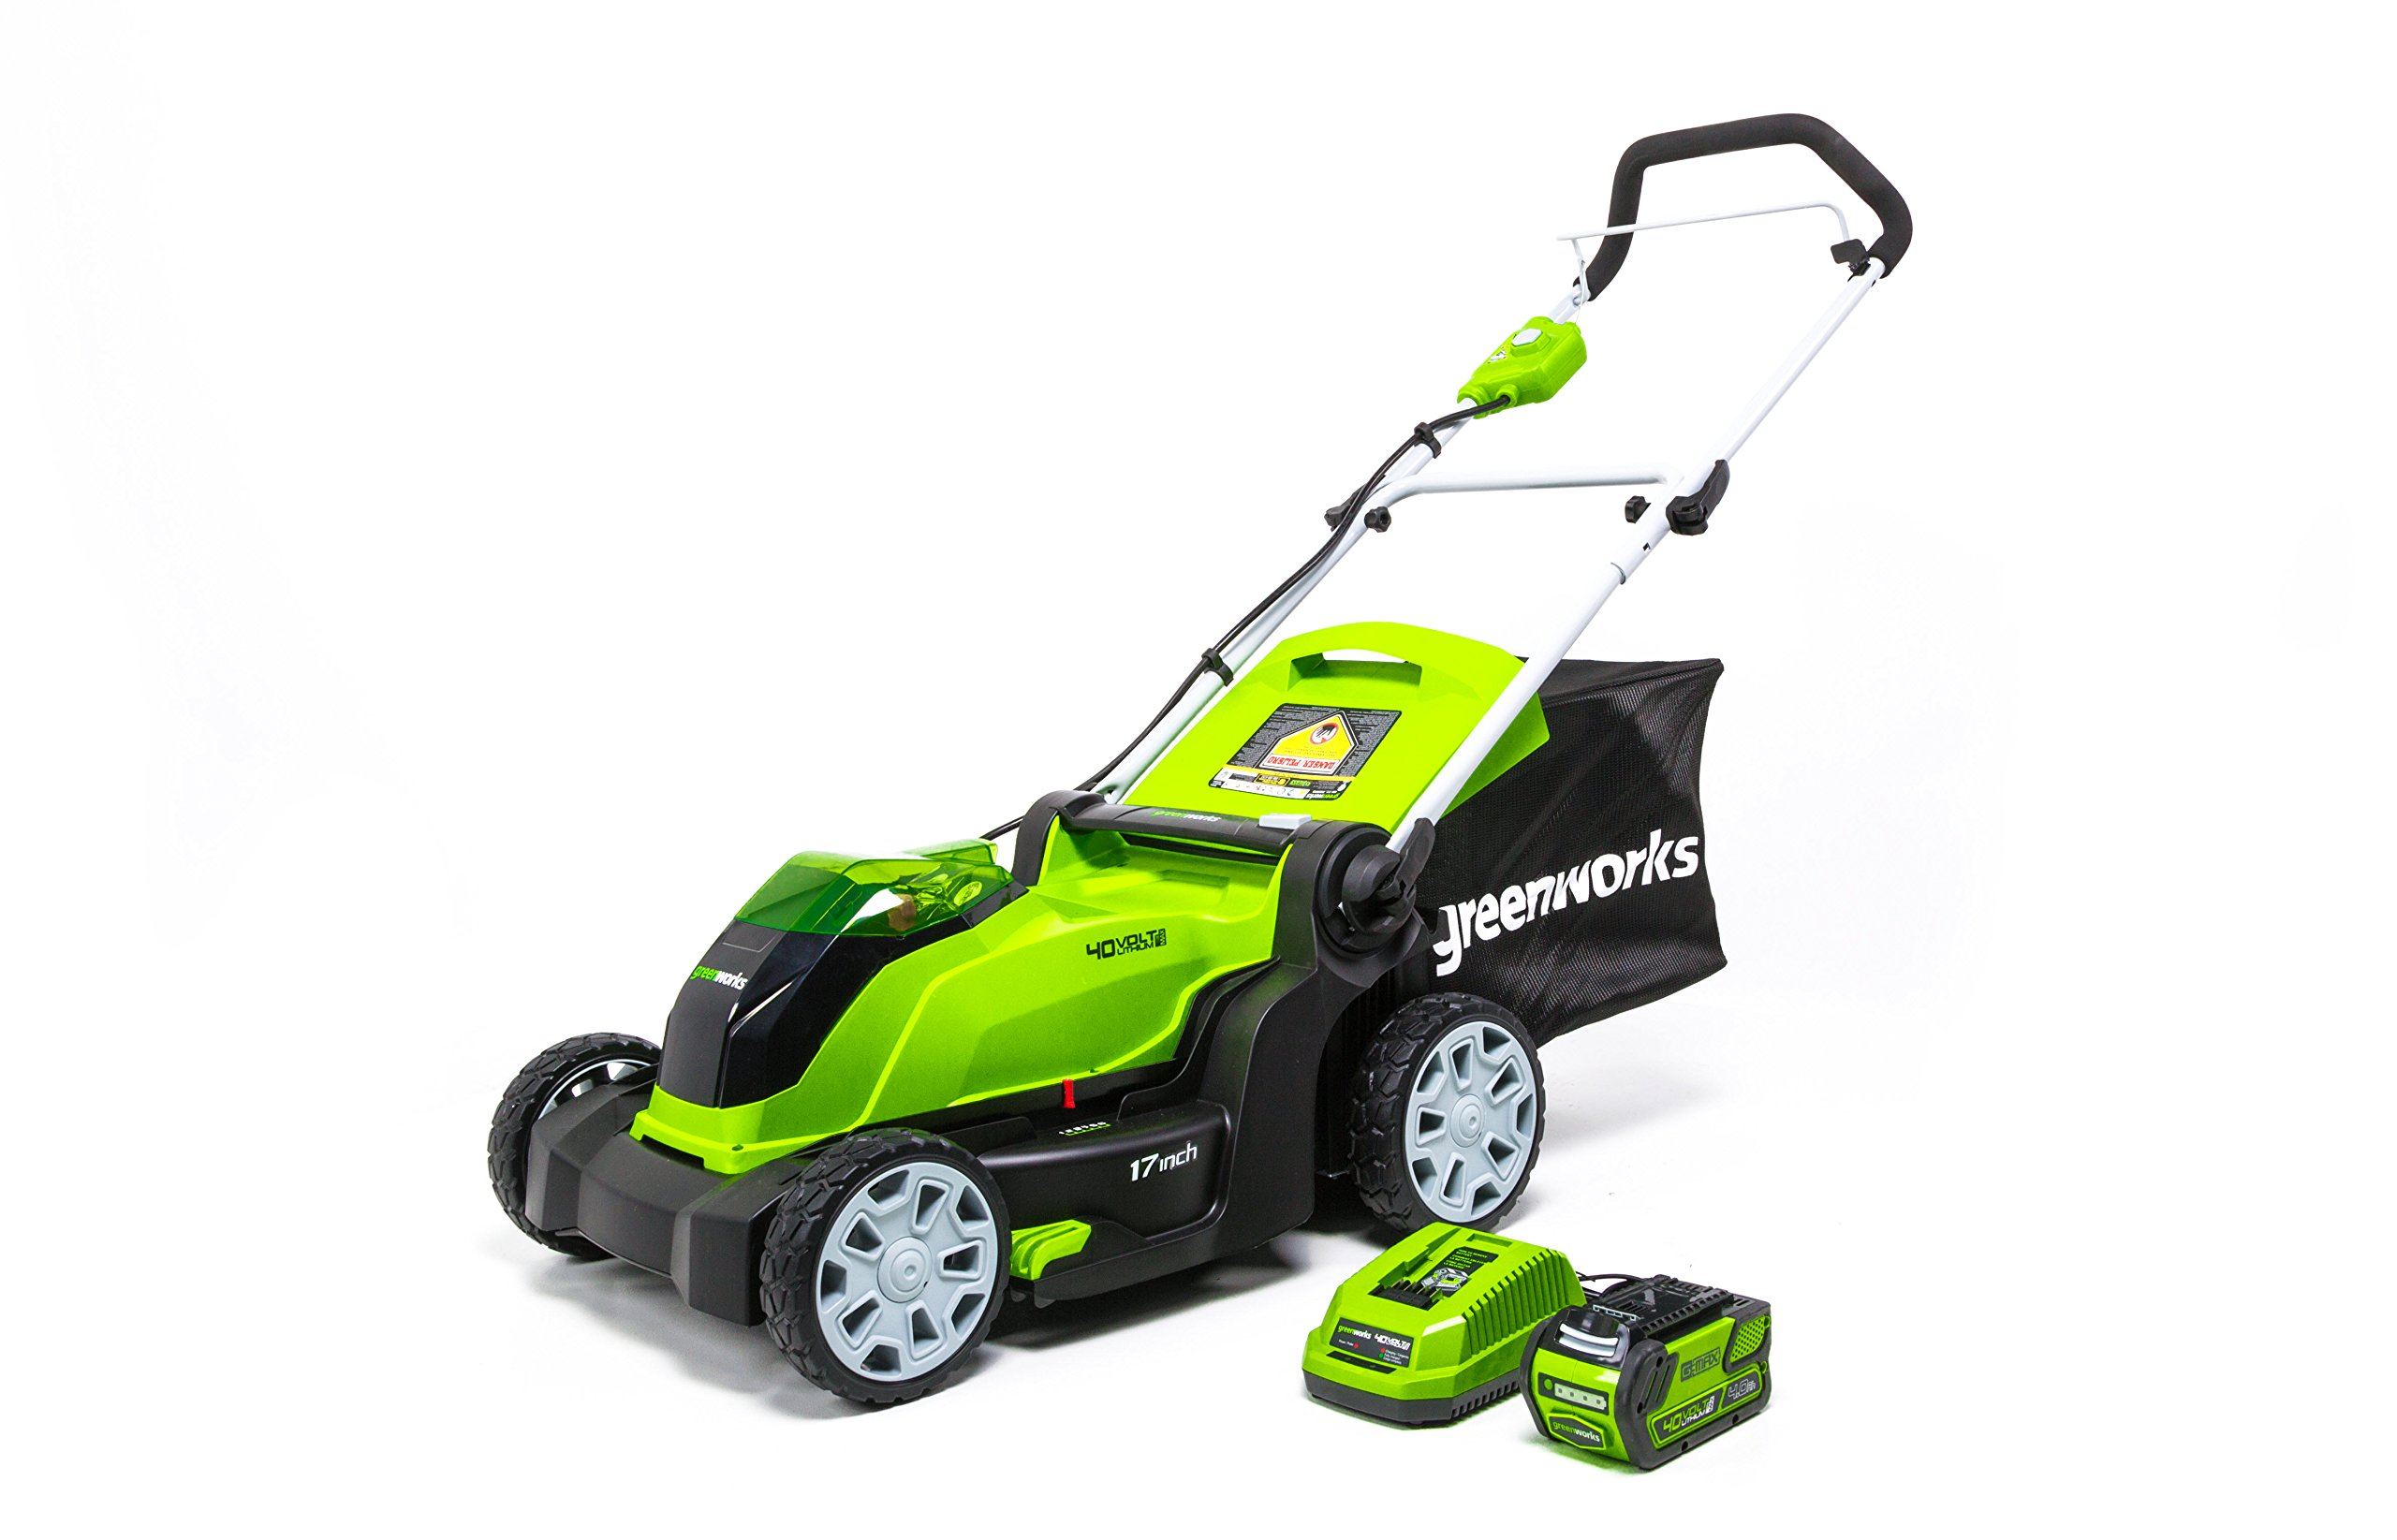 Greenworks 17 Inch Cordless Included MO40B411